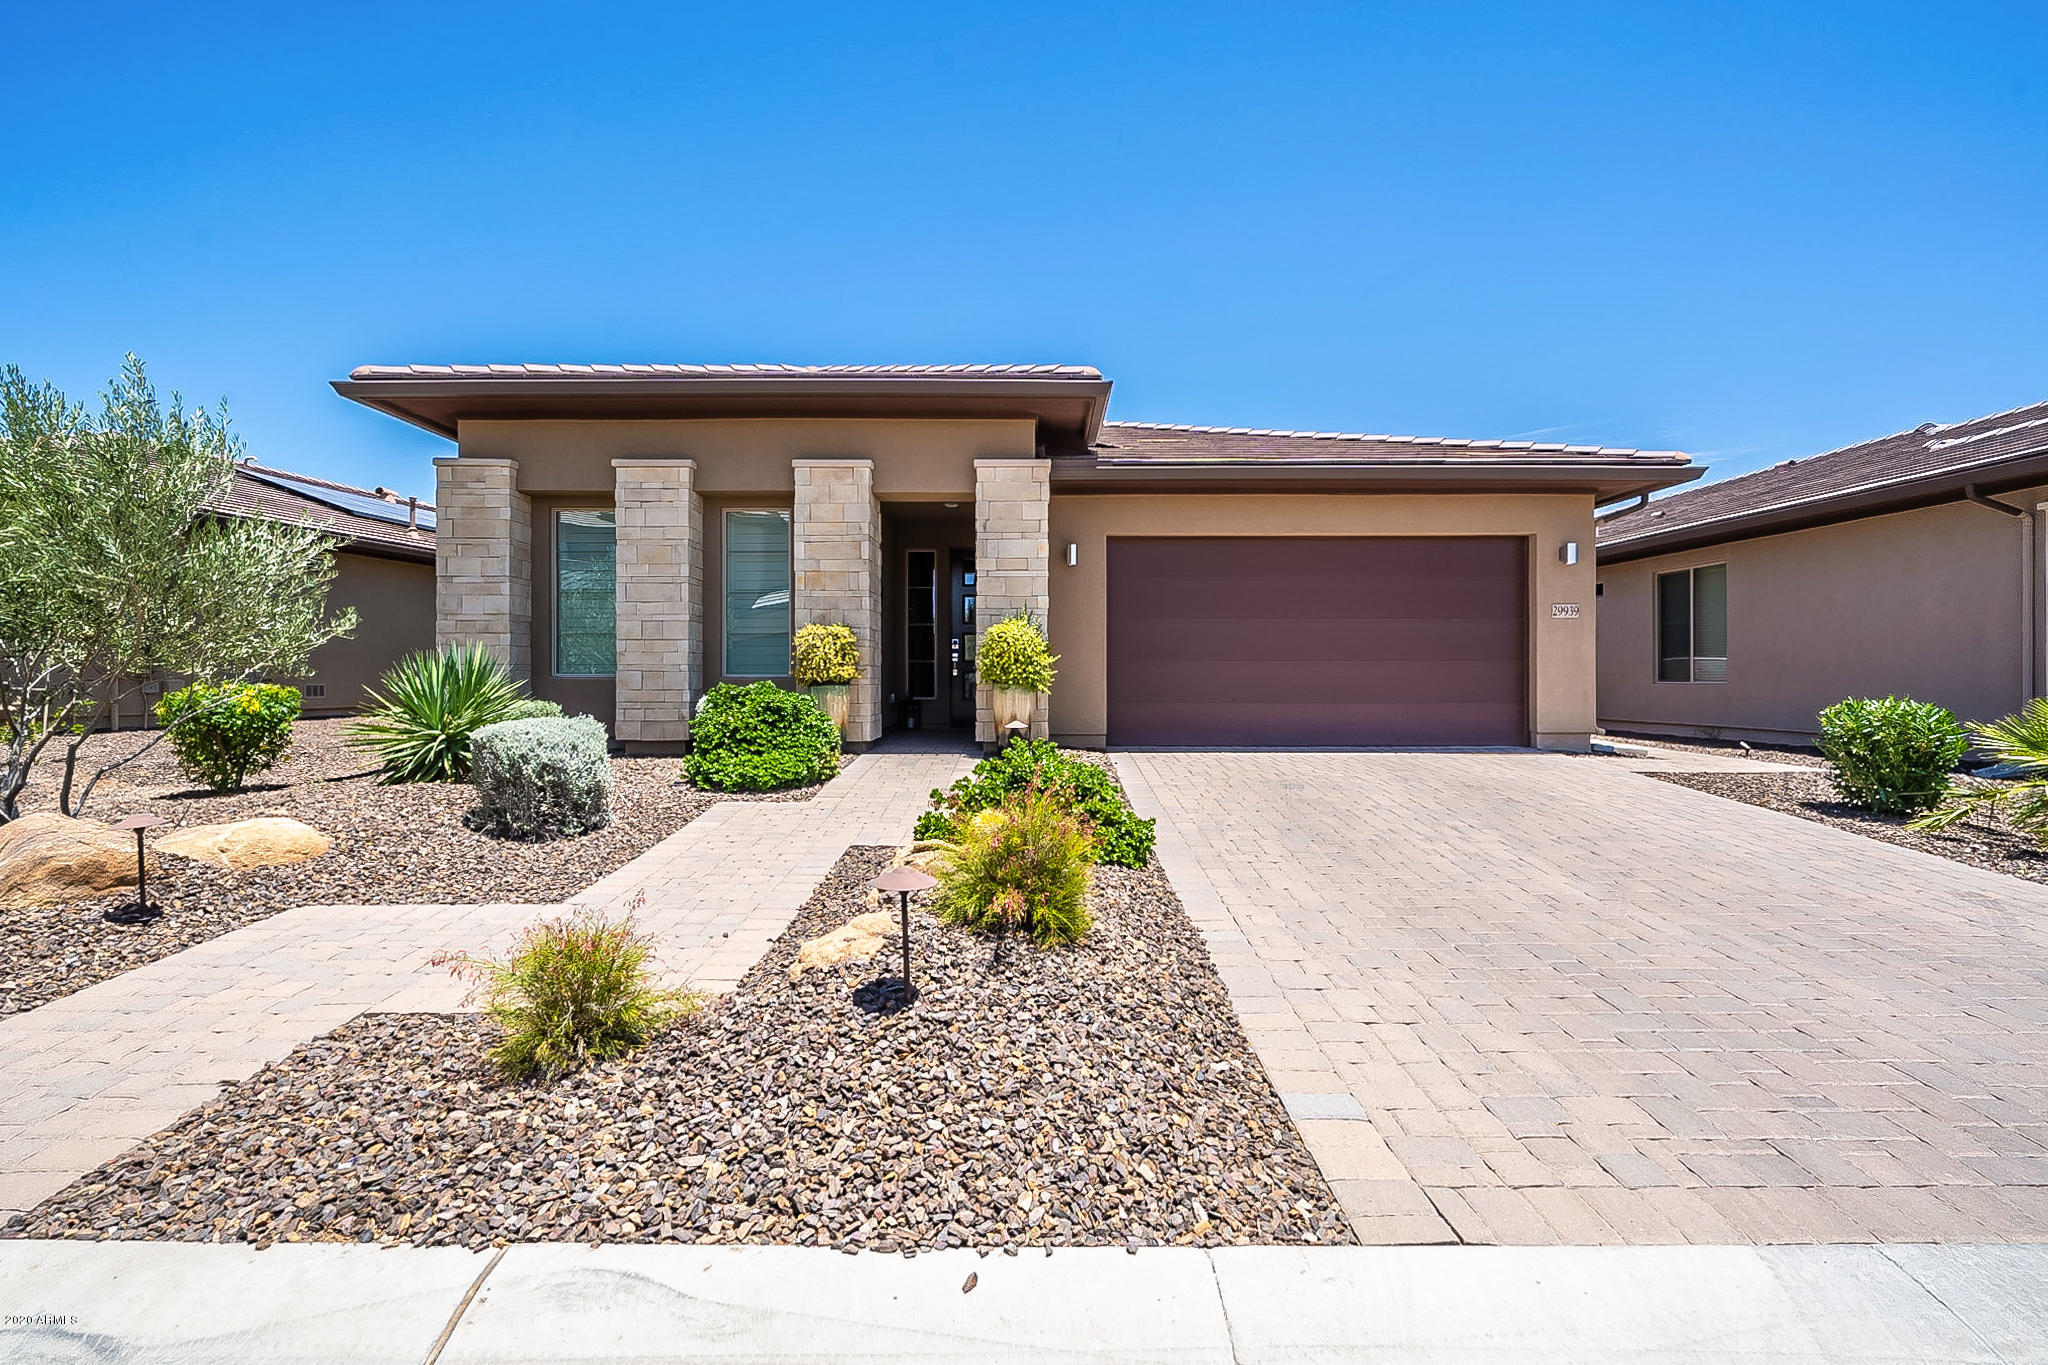 29939 N 134TH Drive, Peoria, AZ 85383, 2 Bedrooms Bedrooms, ,Residential Lease,For Rent,29939 N 134TH Drive,6296557